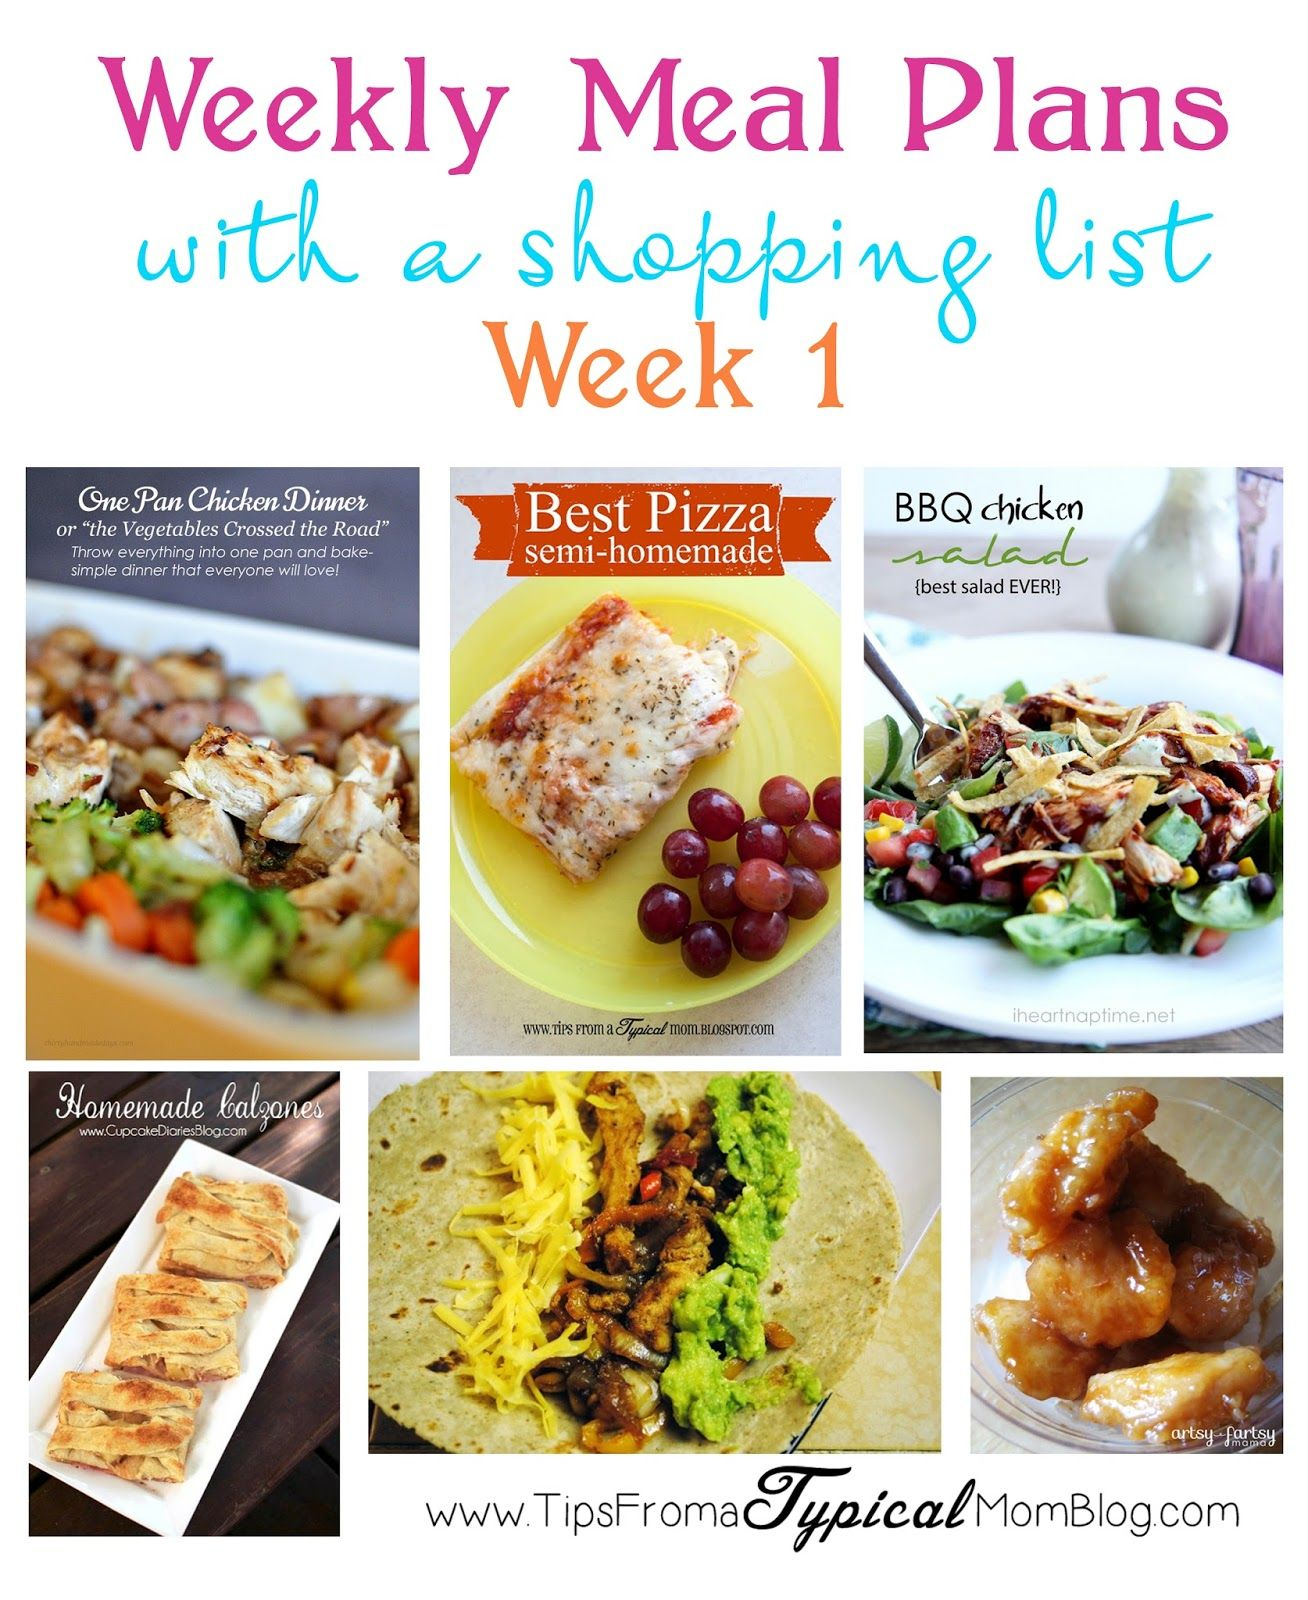 Family Friendly Meal Planning done for you! Includes a shopping list! Week 1. Tips From a Typical Mom.